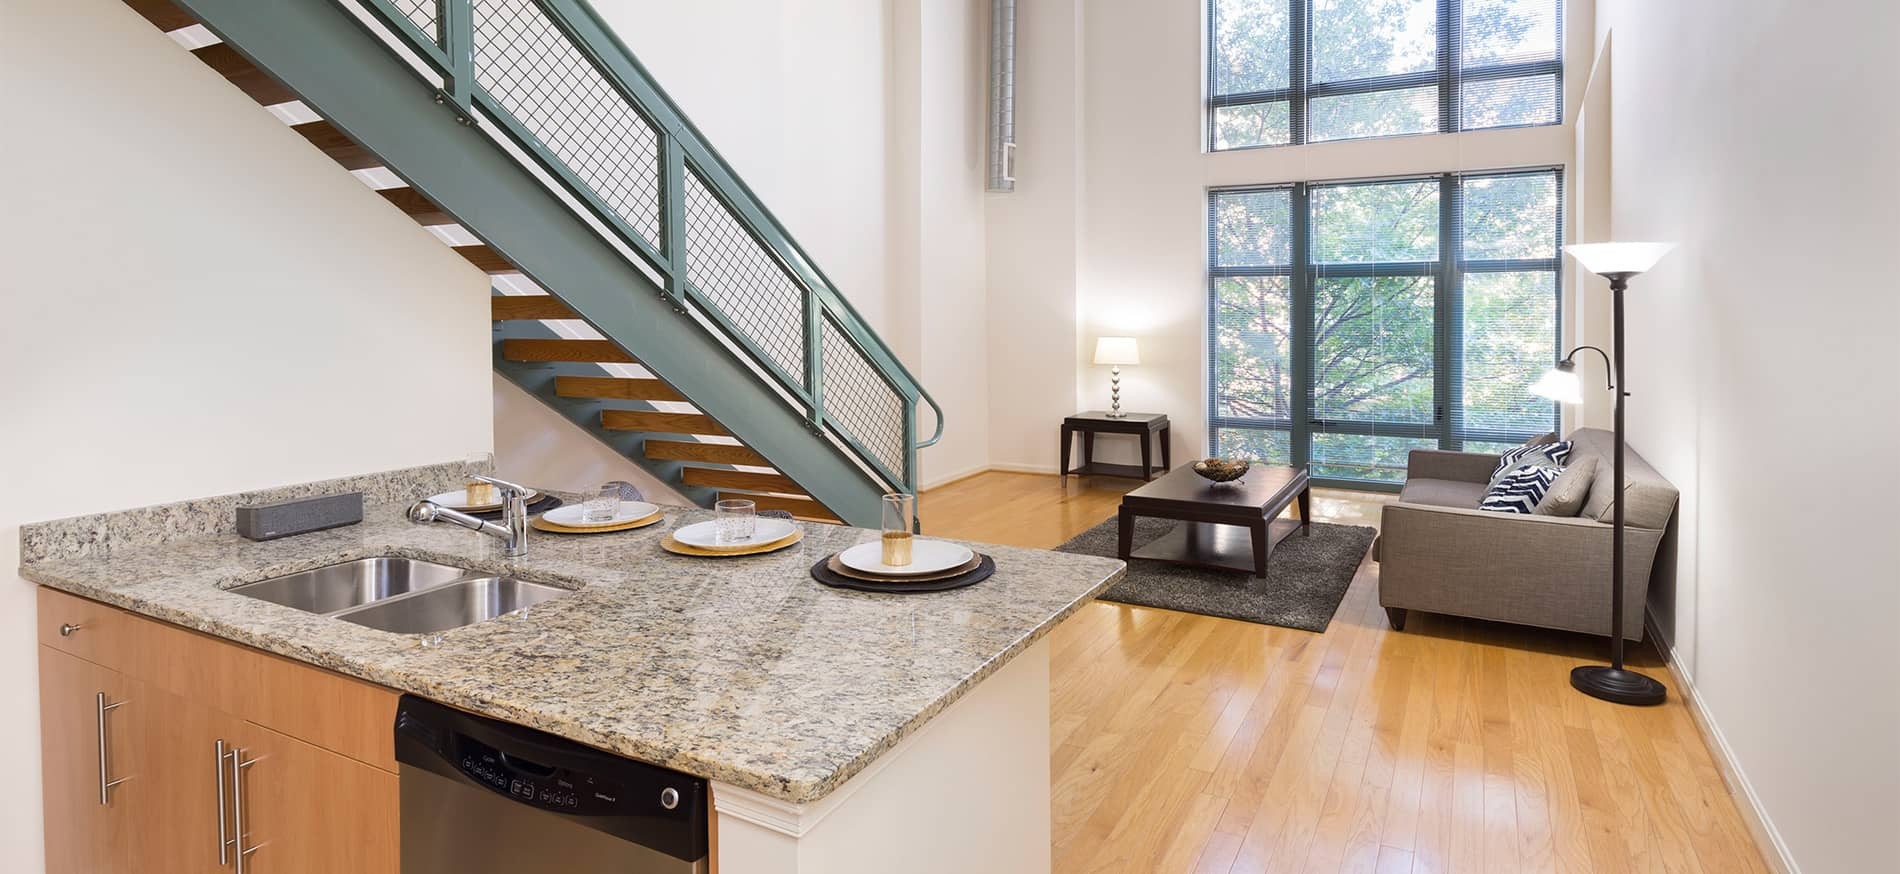 hardwood floor price per square foot of floor plans and pricing for delancey at shirlington village pertaining to delancey at shirlington village kitchen